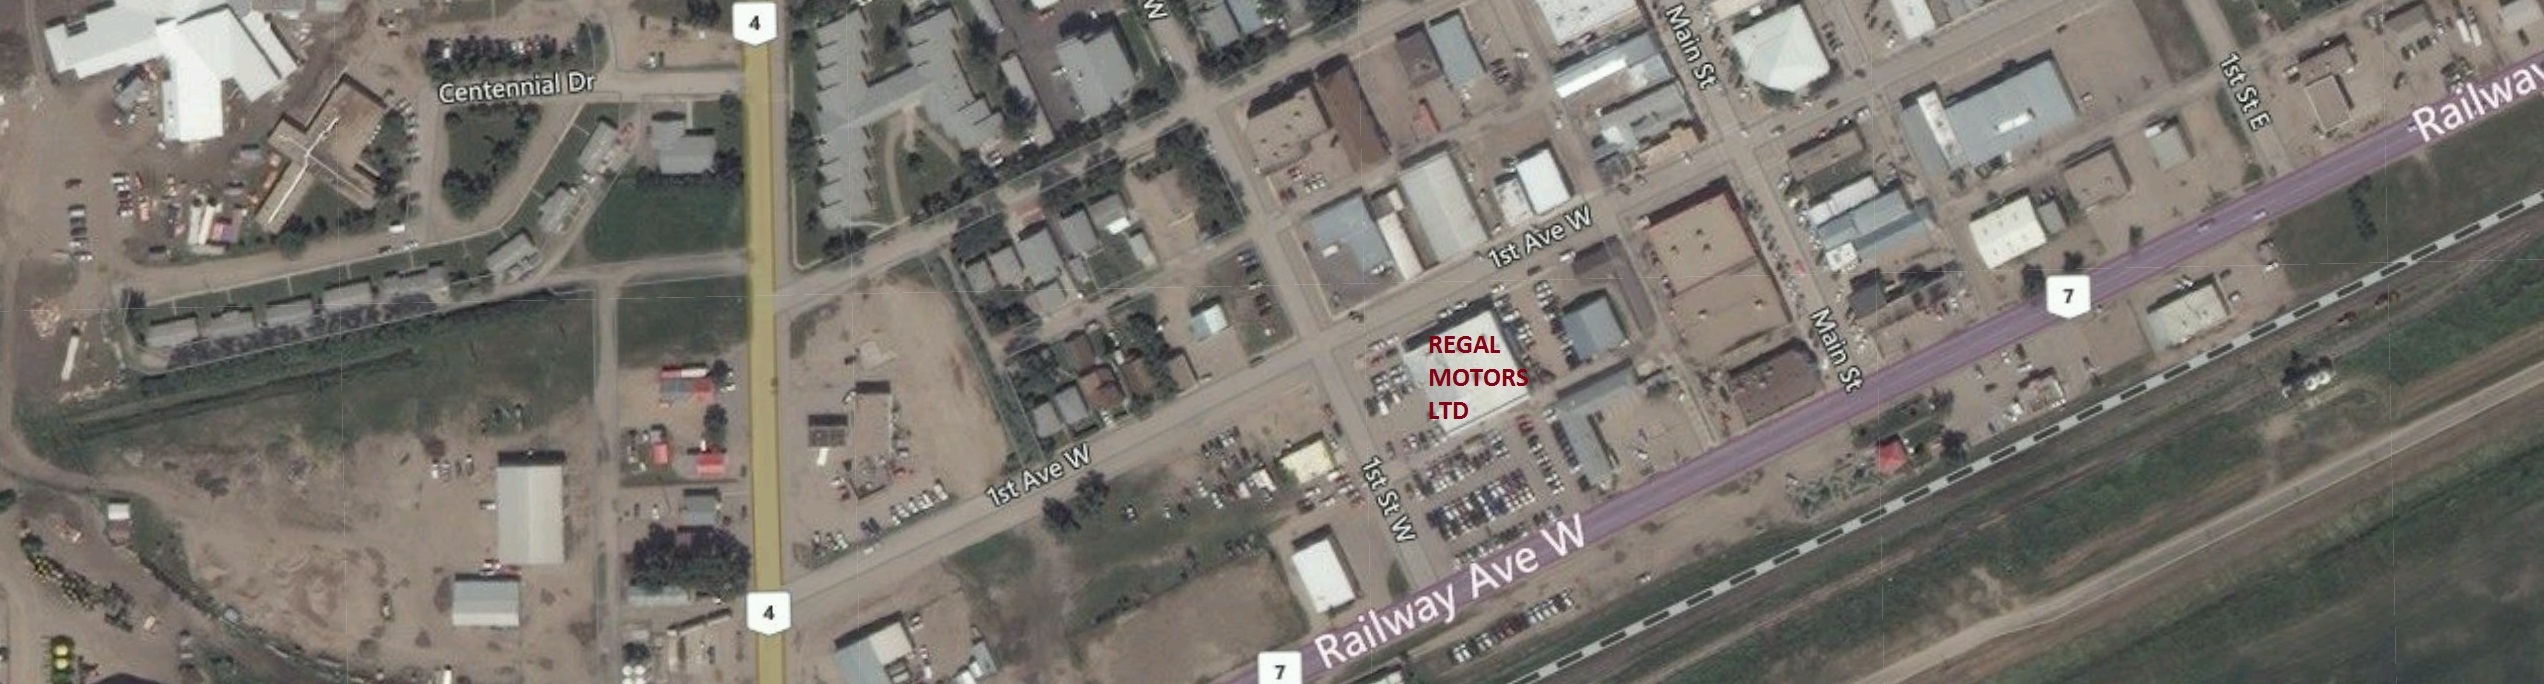 Google Map Directions to Regal Motors in Rosetown SK